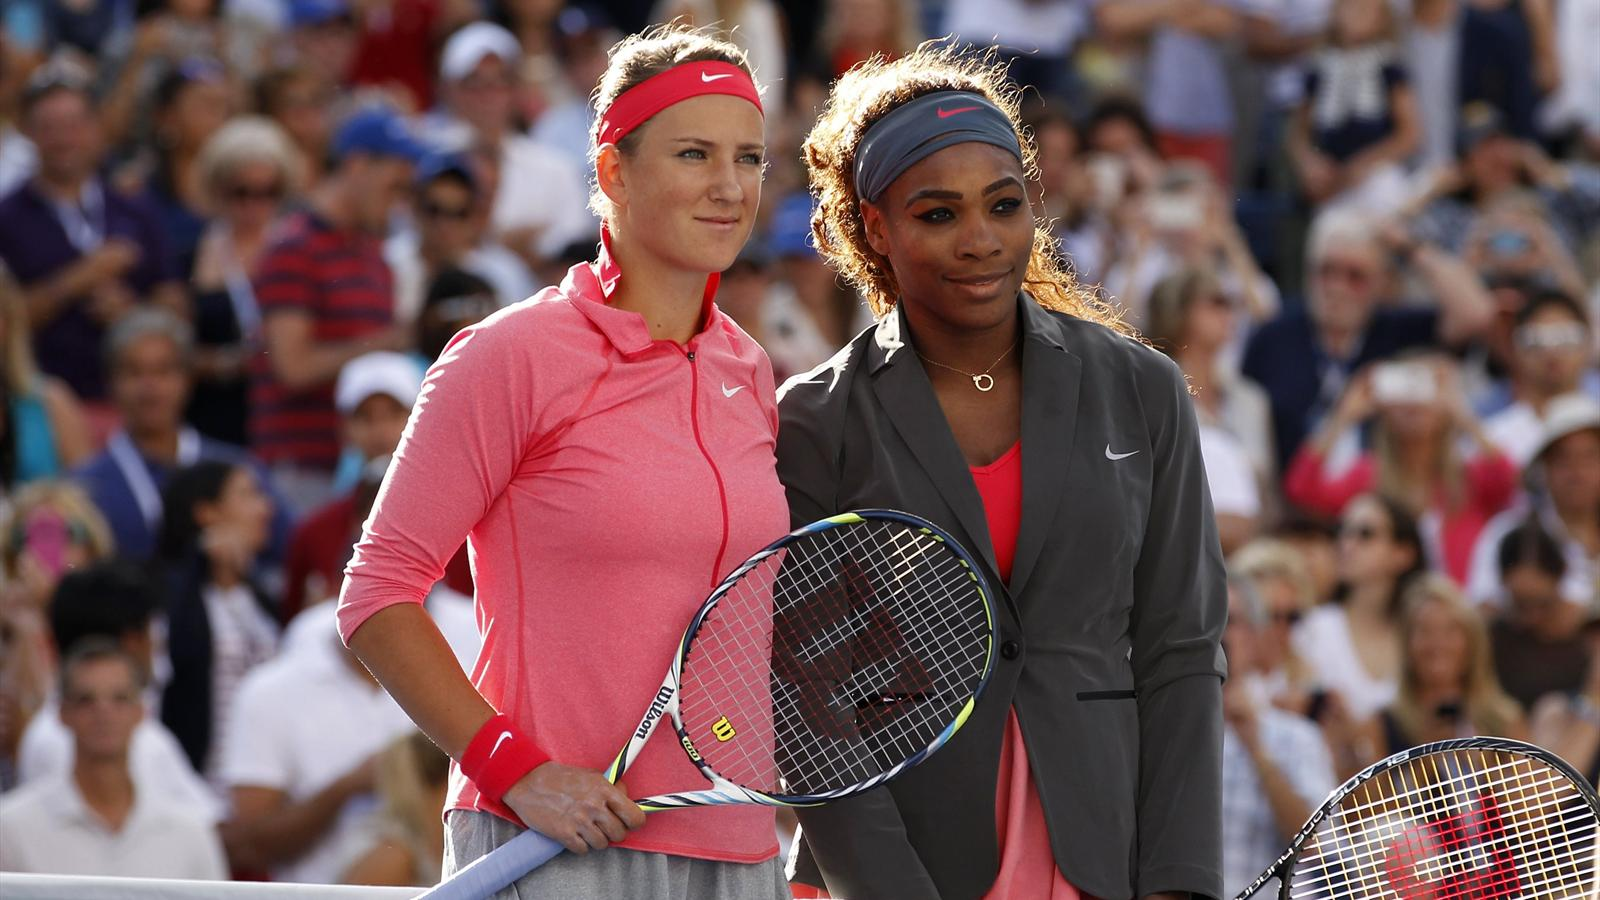 Serena Williams of the U.S. (R) and Victoria Azarenka of Belarus pose ahead of their women's singles final match at the U.S. Open (Reuters)